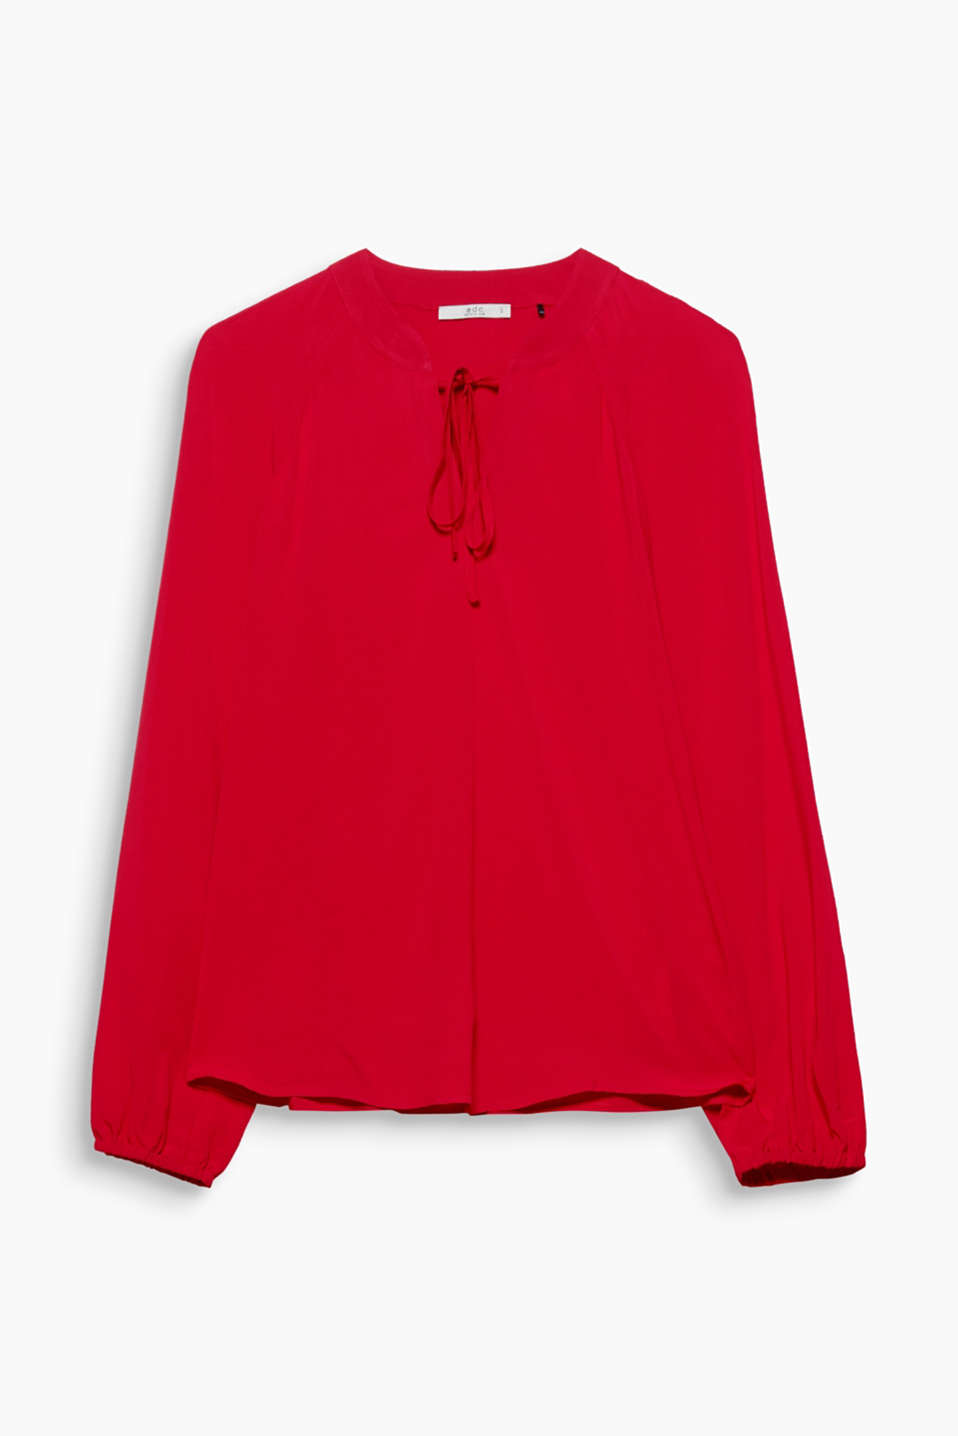 This softly flowing blouse with a laced neckline and loose, figure-skimming fit is an item for every occasion.